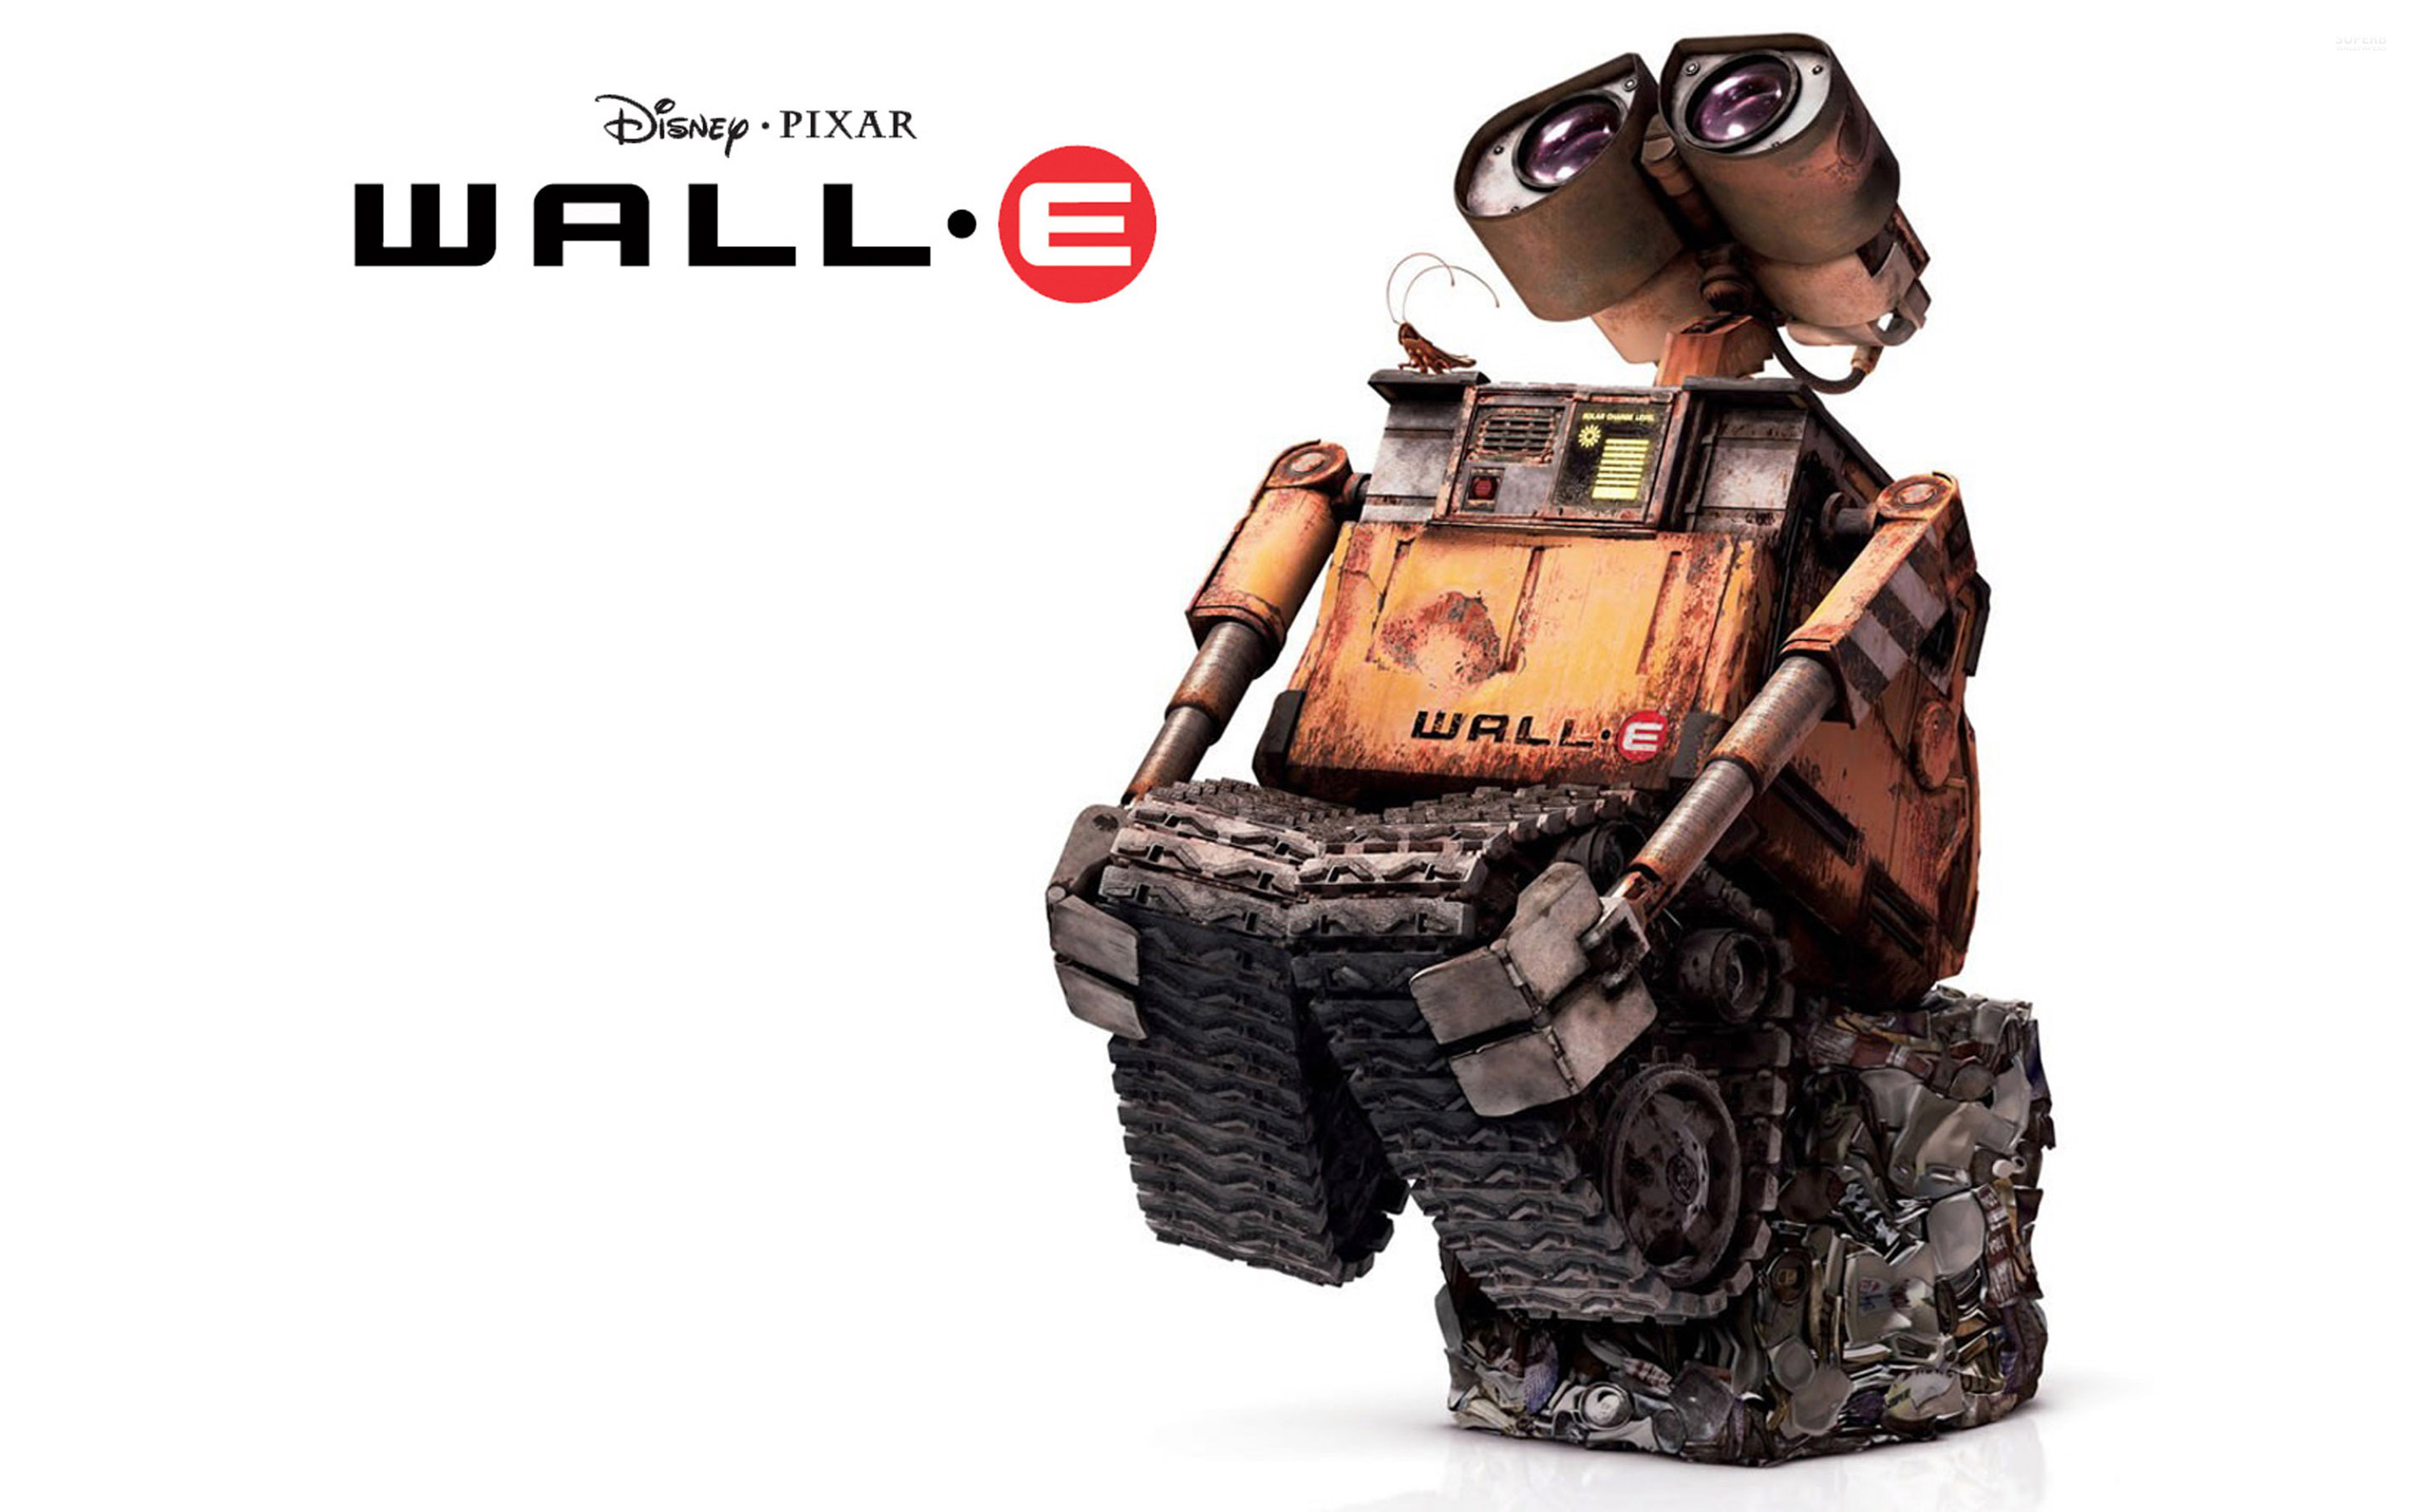 WALL-E wallpaper 2880x1800 jpg